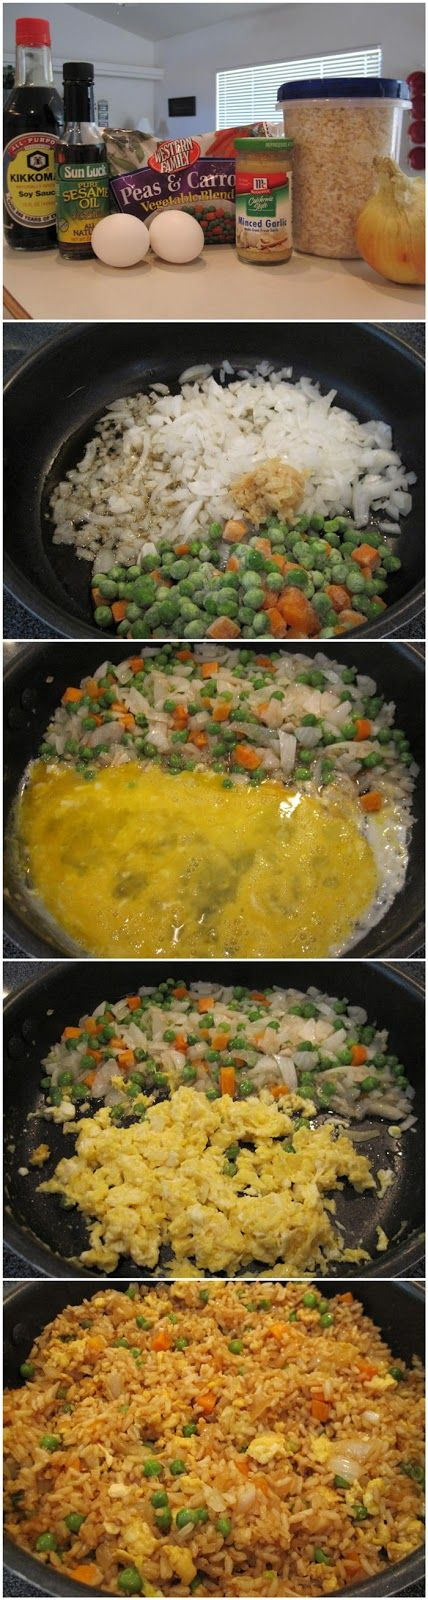 3 cups cooked white rice (day old or leftover rice works best!) 3 tbs sesame oil 1 cup frozen peas and carrots (thawed) 1 small onion, chopped 2 tsp minced garlic 2 eggs, slightly beaten 1/4 cup soy sauce